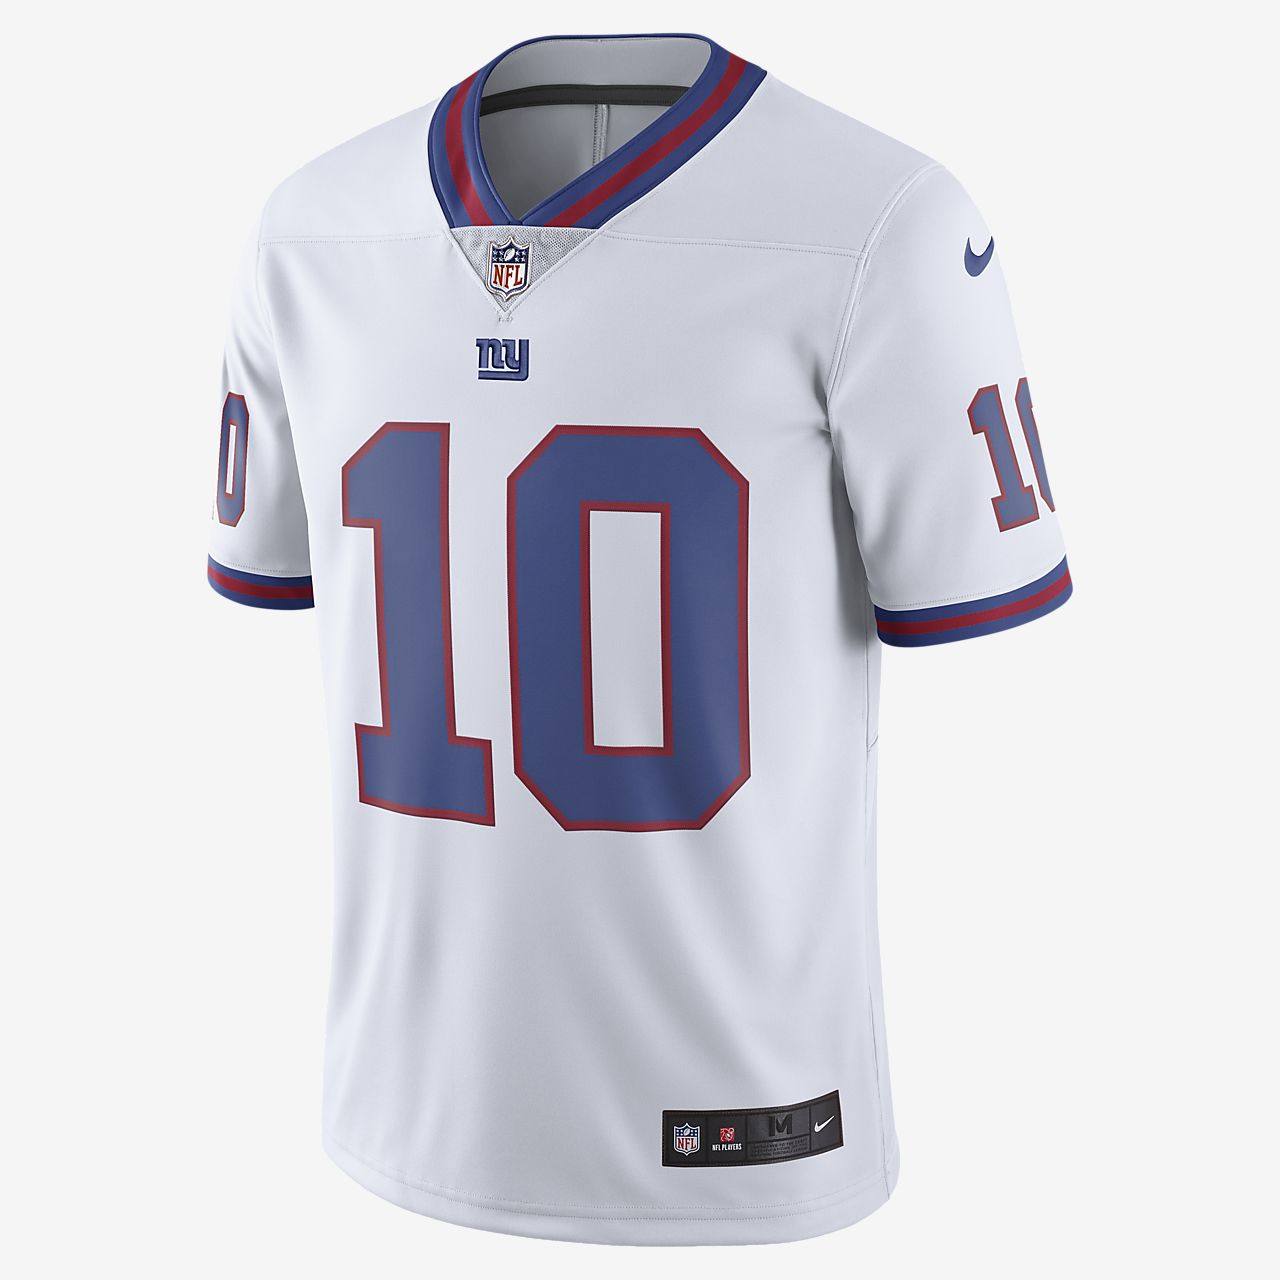 nfl limited jersey